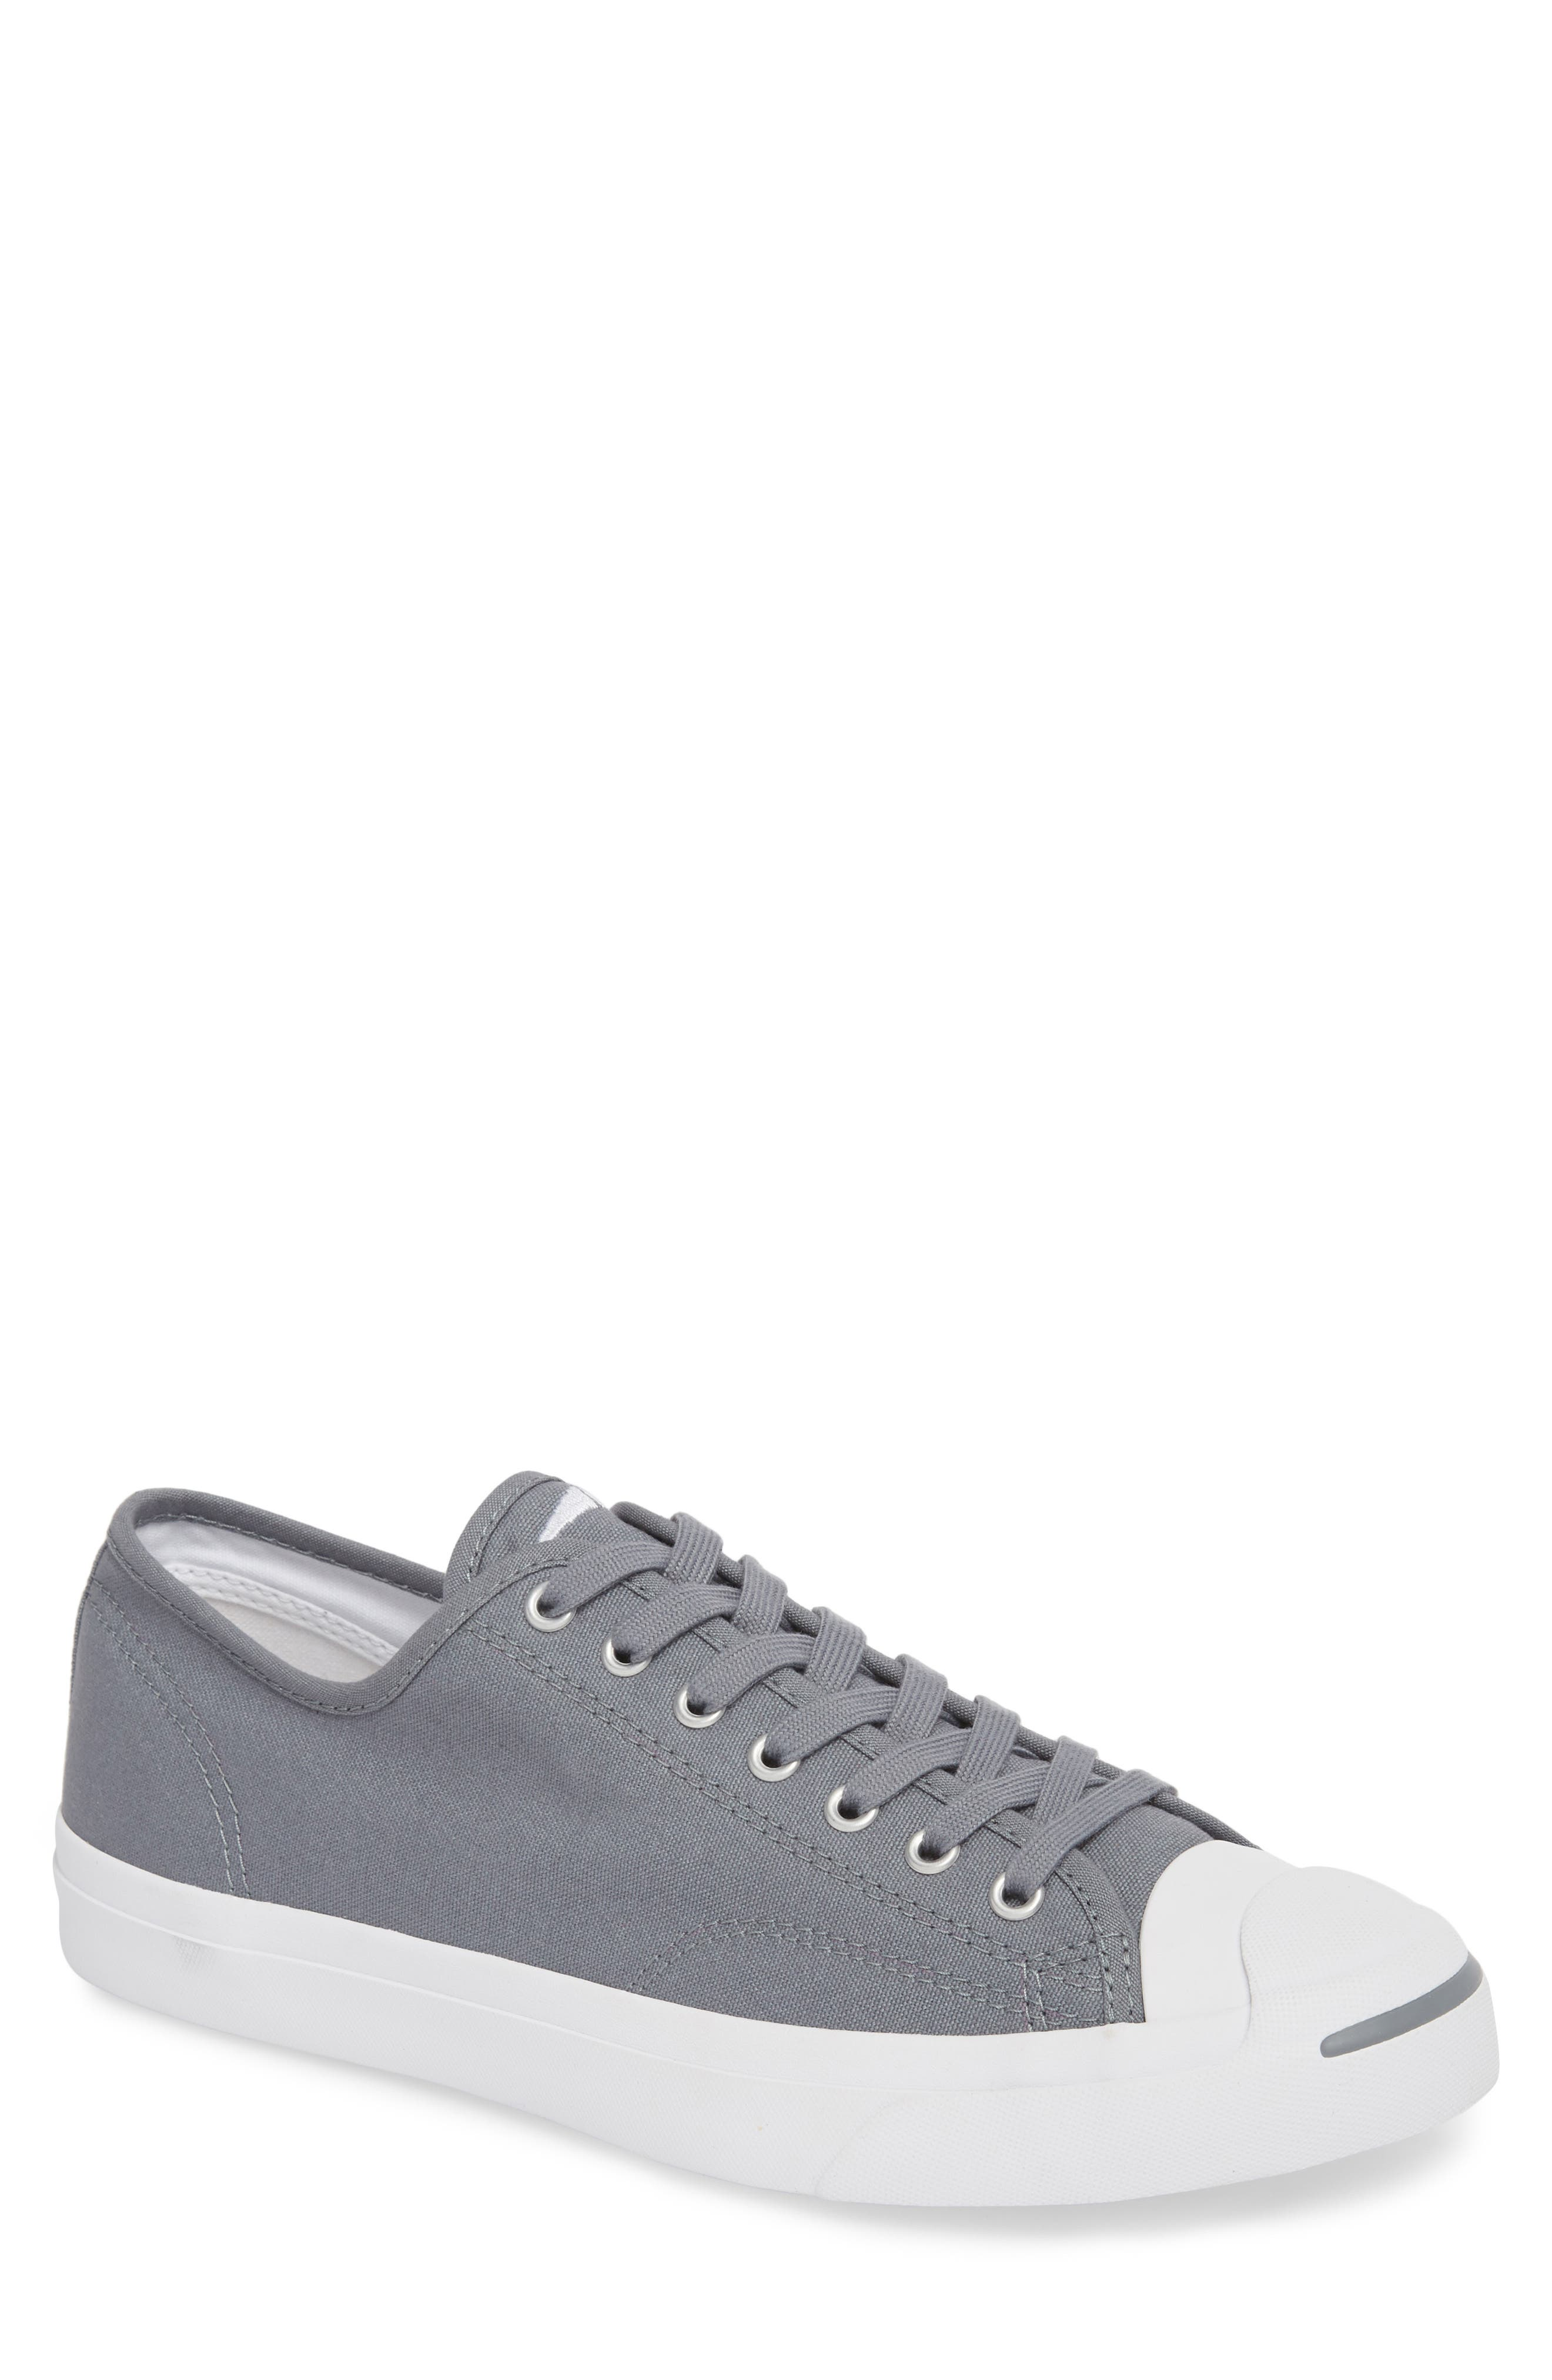 'Jack Purcell' Sneaker,                             Main thumbnail 1, color,                             Cool Grey Canvas